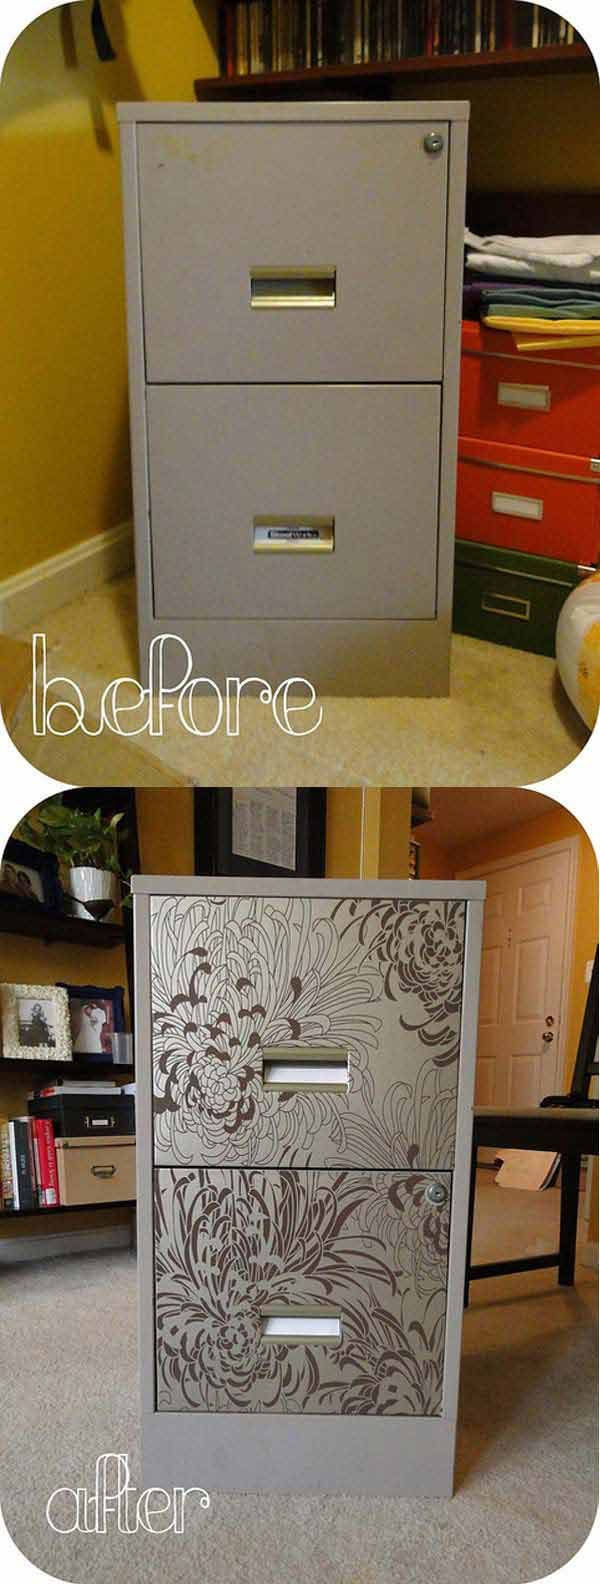 Filing cabinets can be pretty unsightly, so why not take it from drab to fab with a cool stencil? Description from lifebuzz.com. I searched for this on bing.com/images